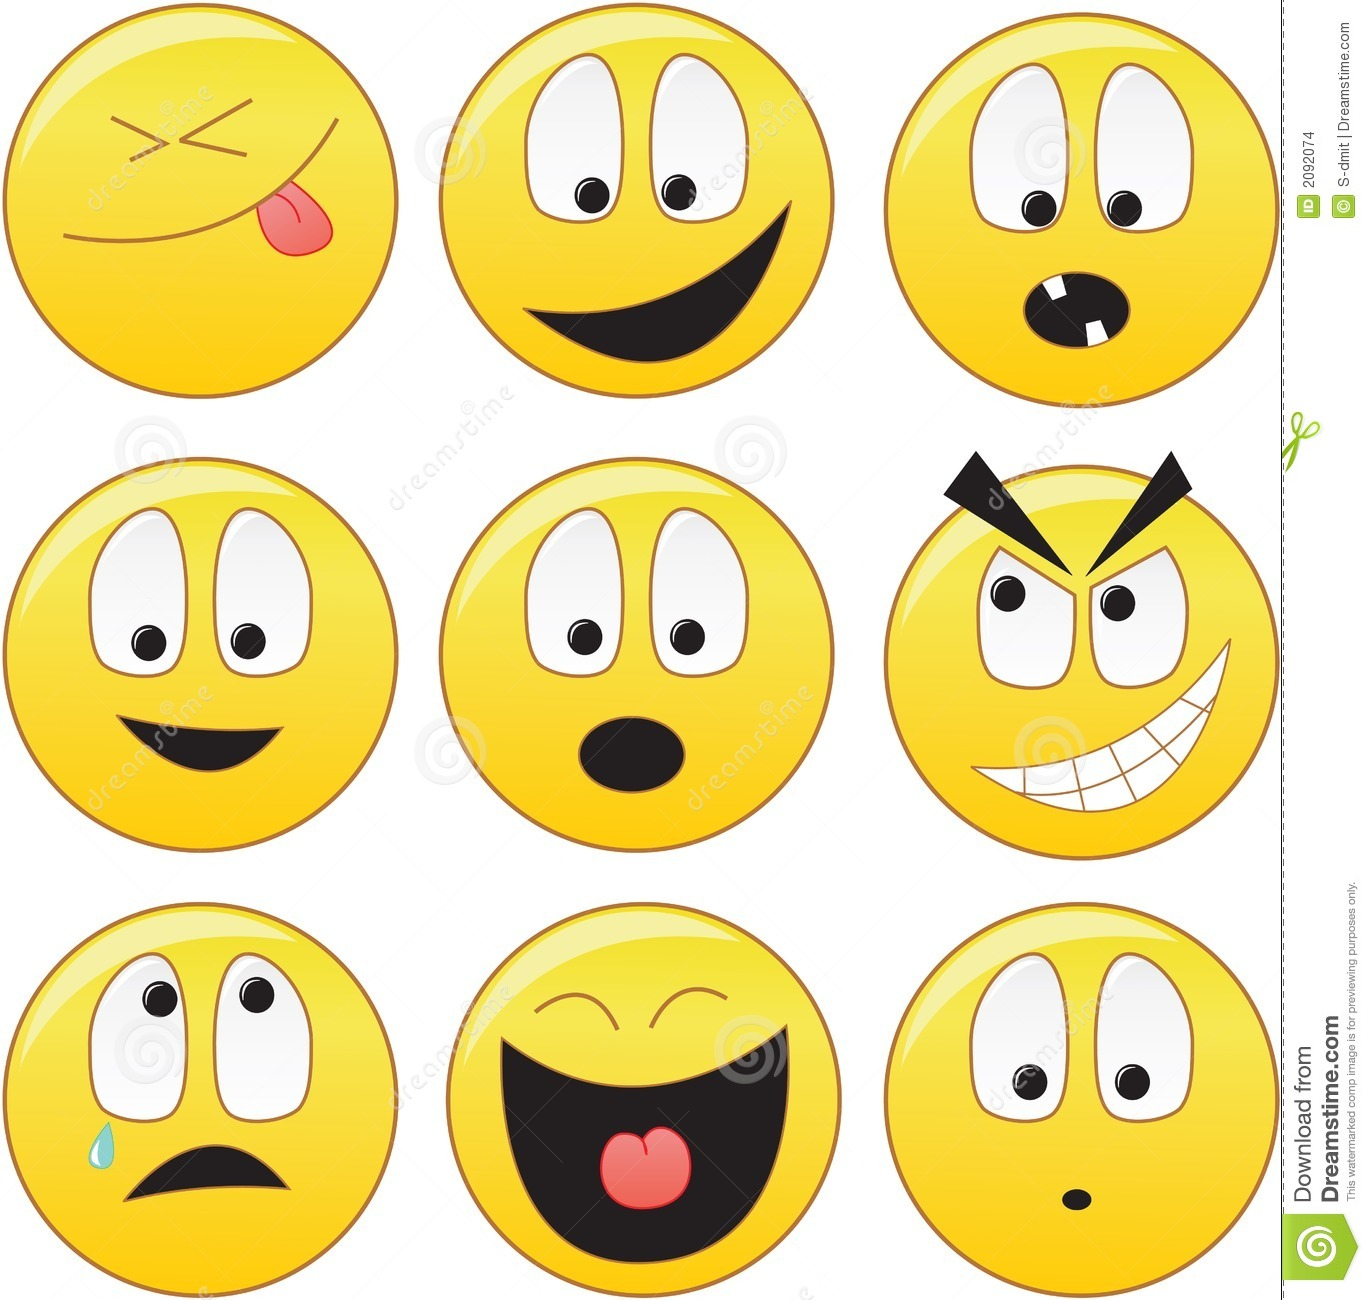 Cool Smiley Face Thumbs Up Smileys Stock Images -...